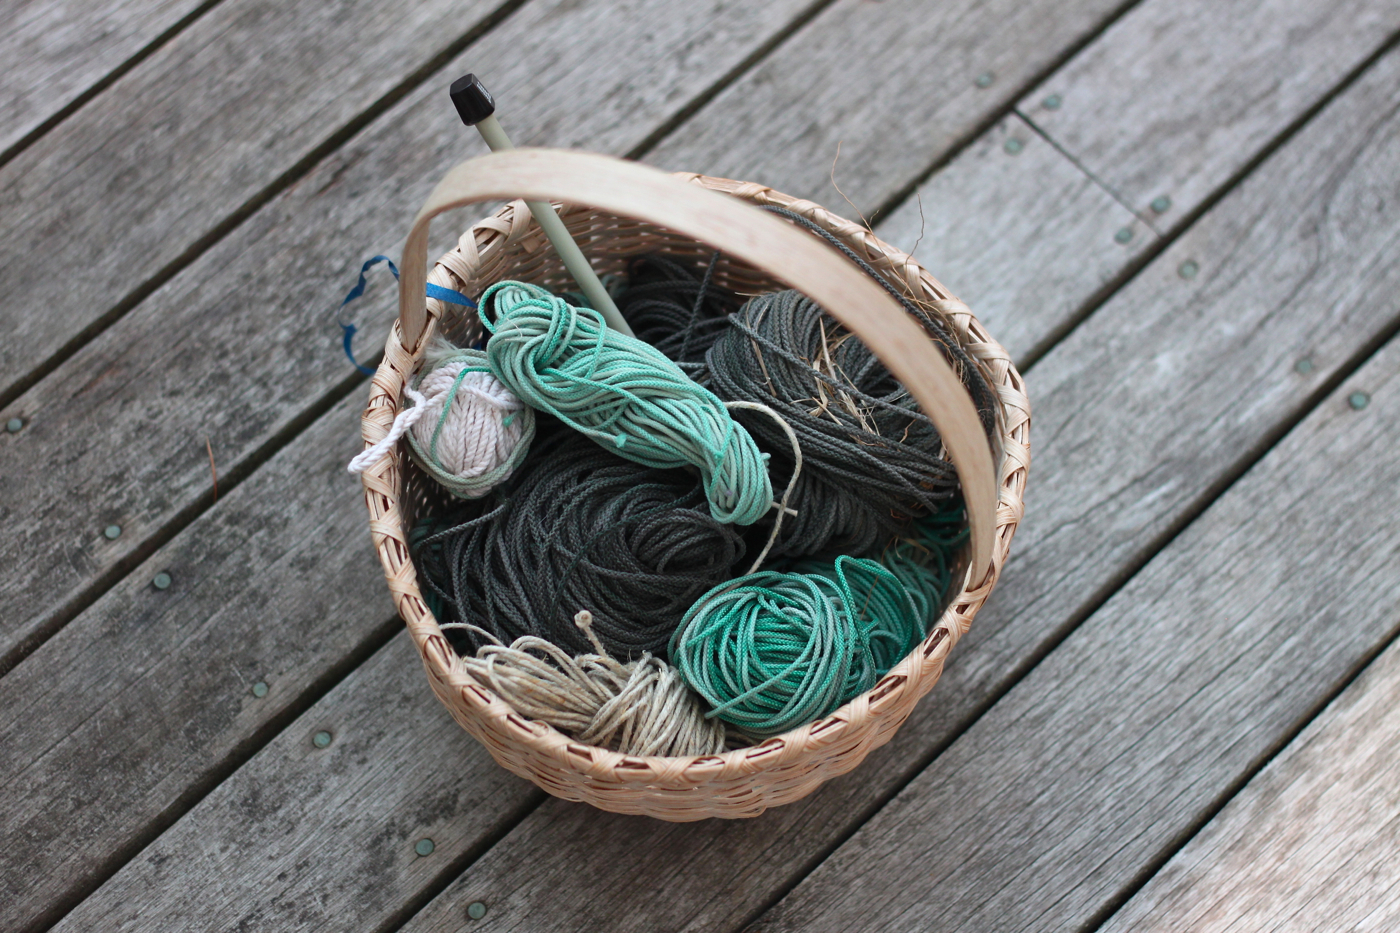 beach twine knits by Marnie Campbell, photo by Justine Hand, coiled twine